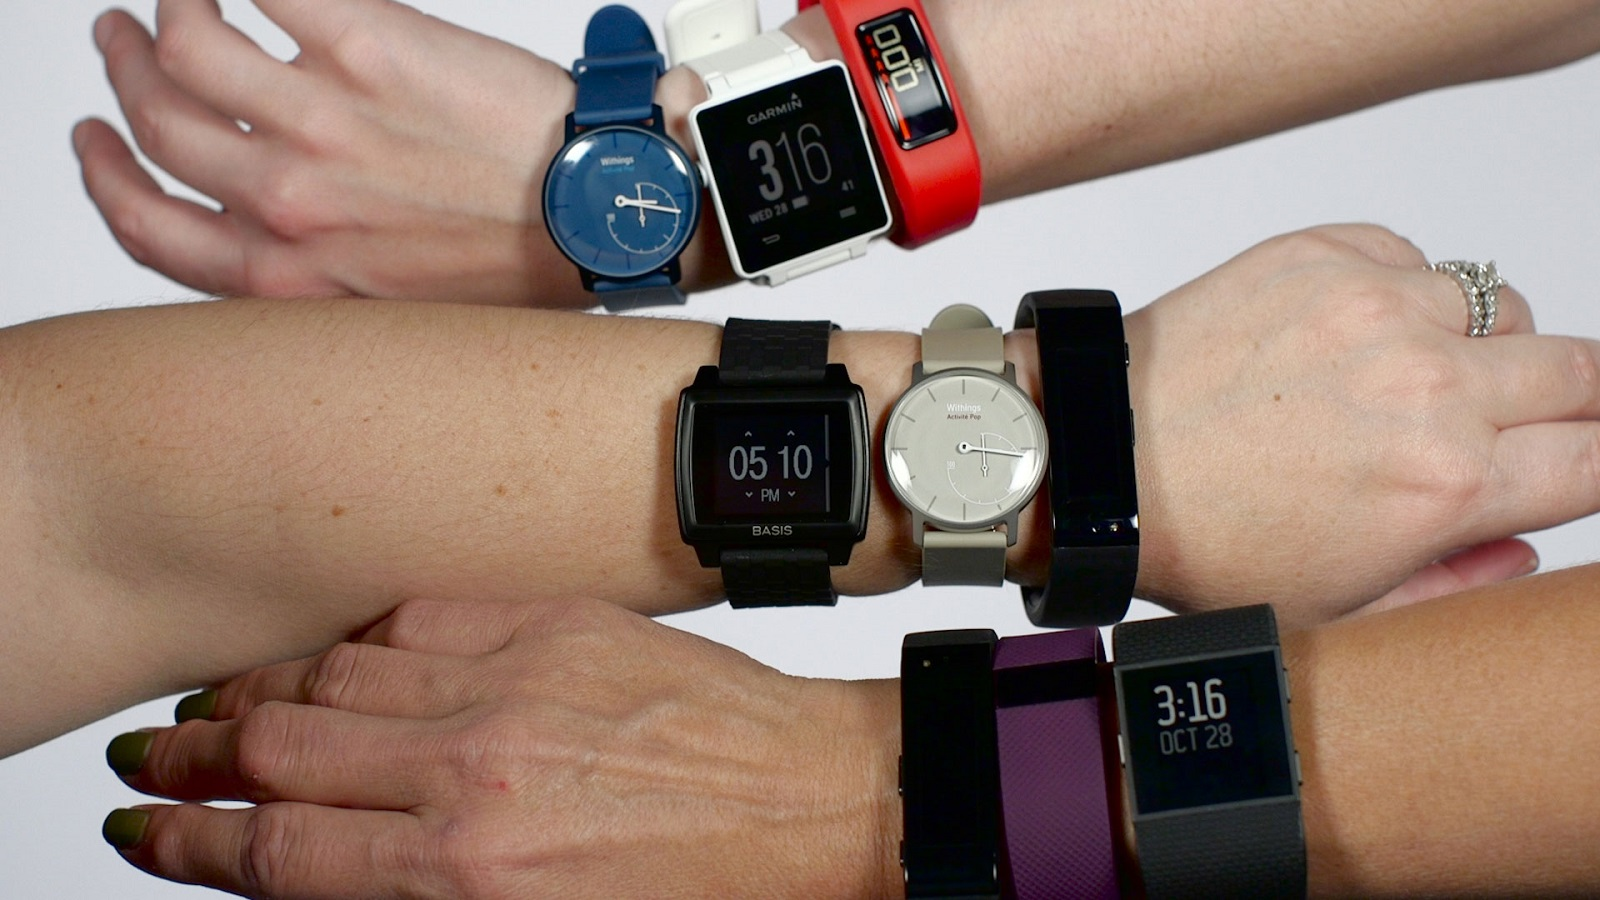 fitness-tracker-review-16x9 (2)